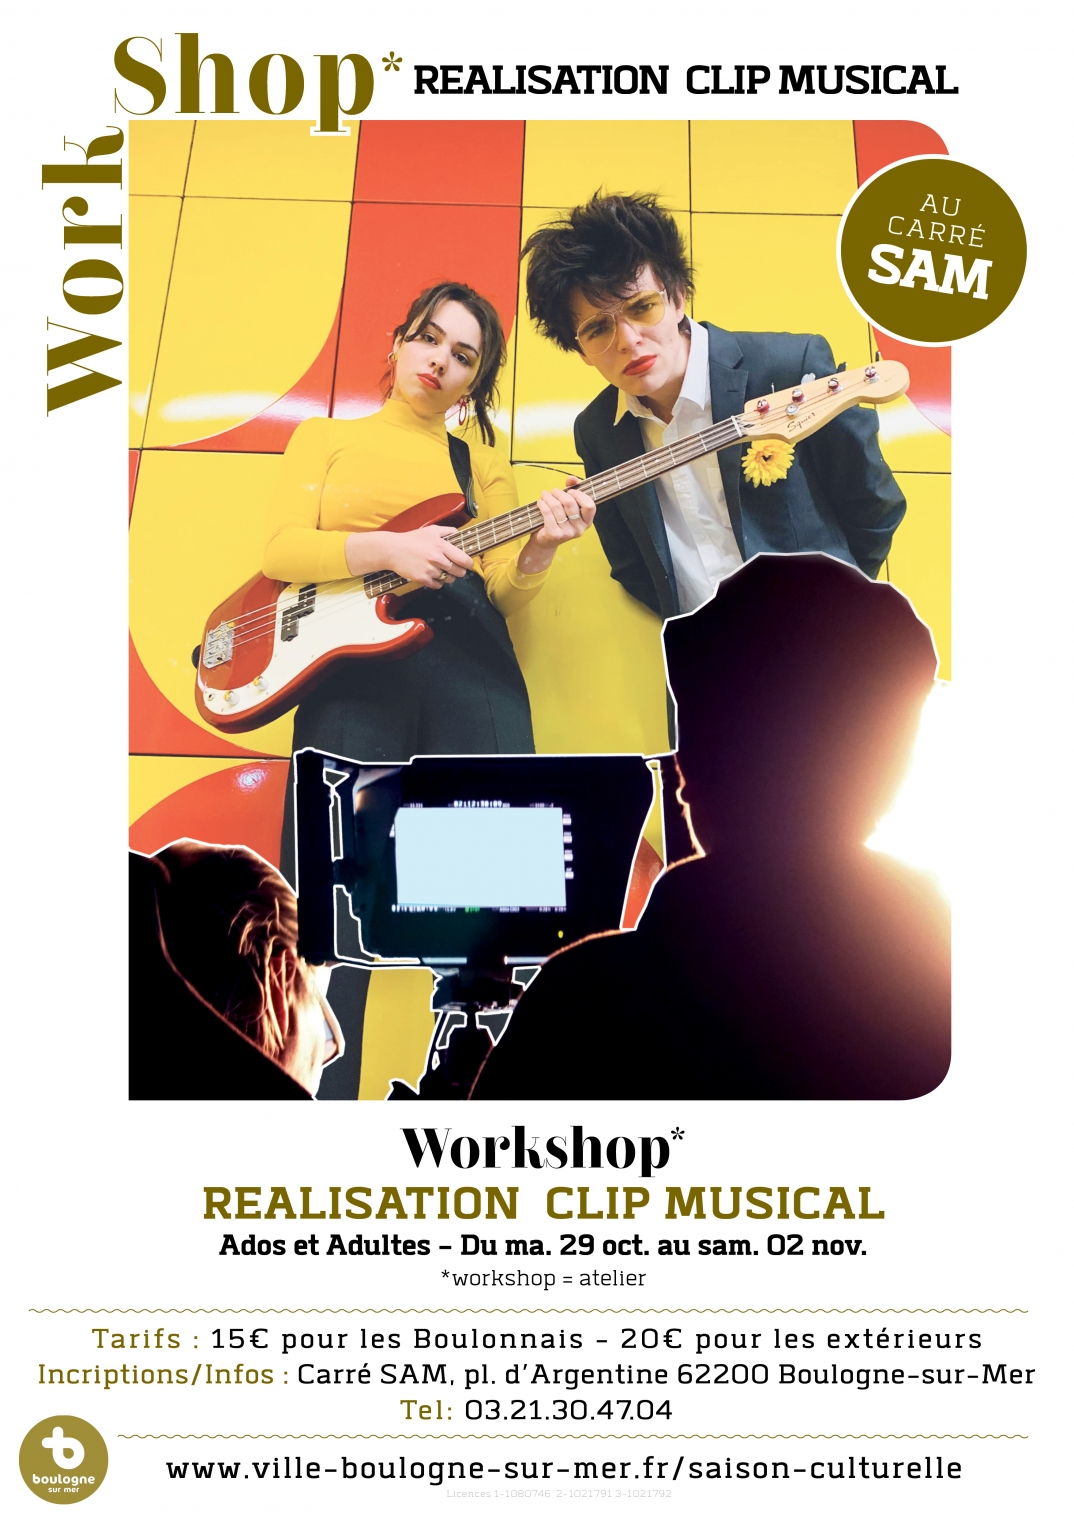 Workshop* Réalisation clip musical